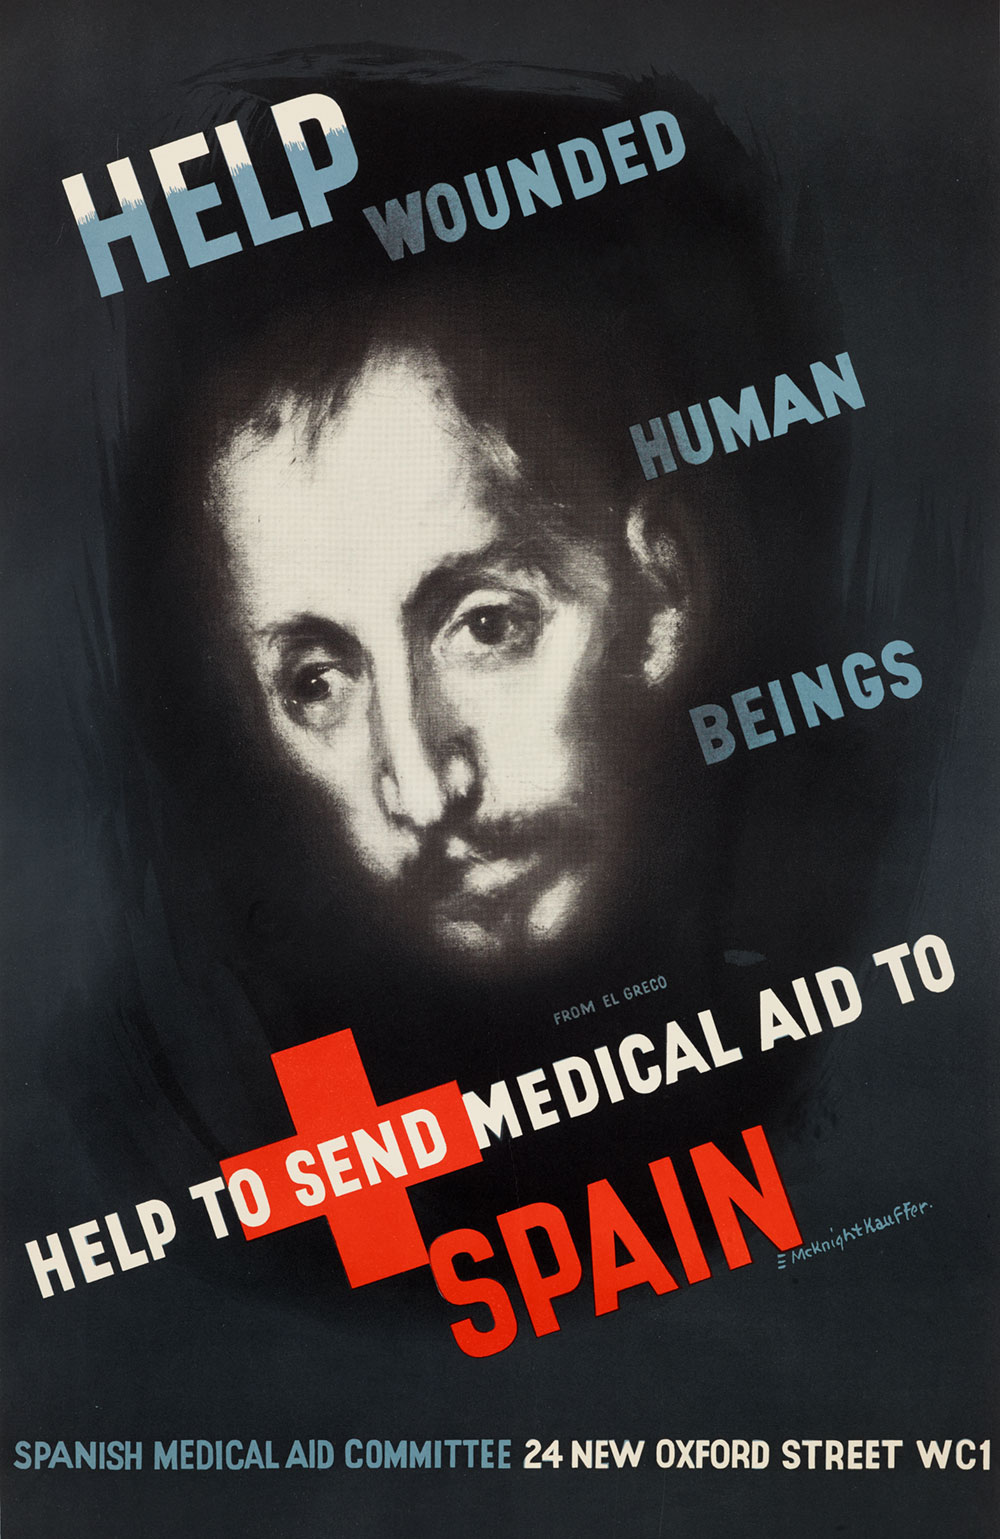 Poster depicting a glowing head which resembles El Greco's Saint Luke surrounded by white and blue text asking for medical aid